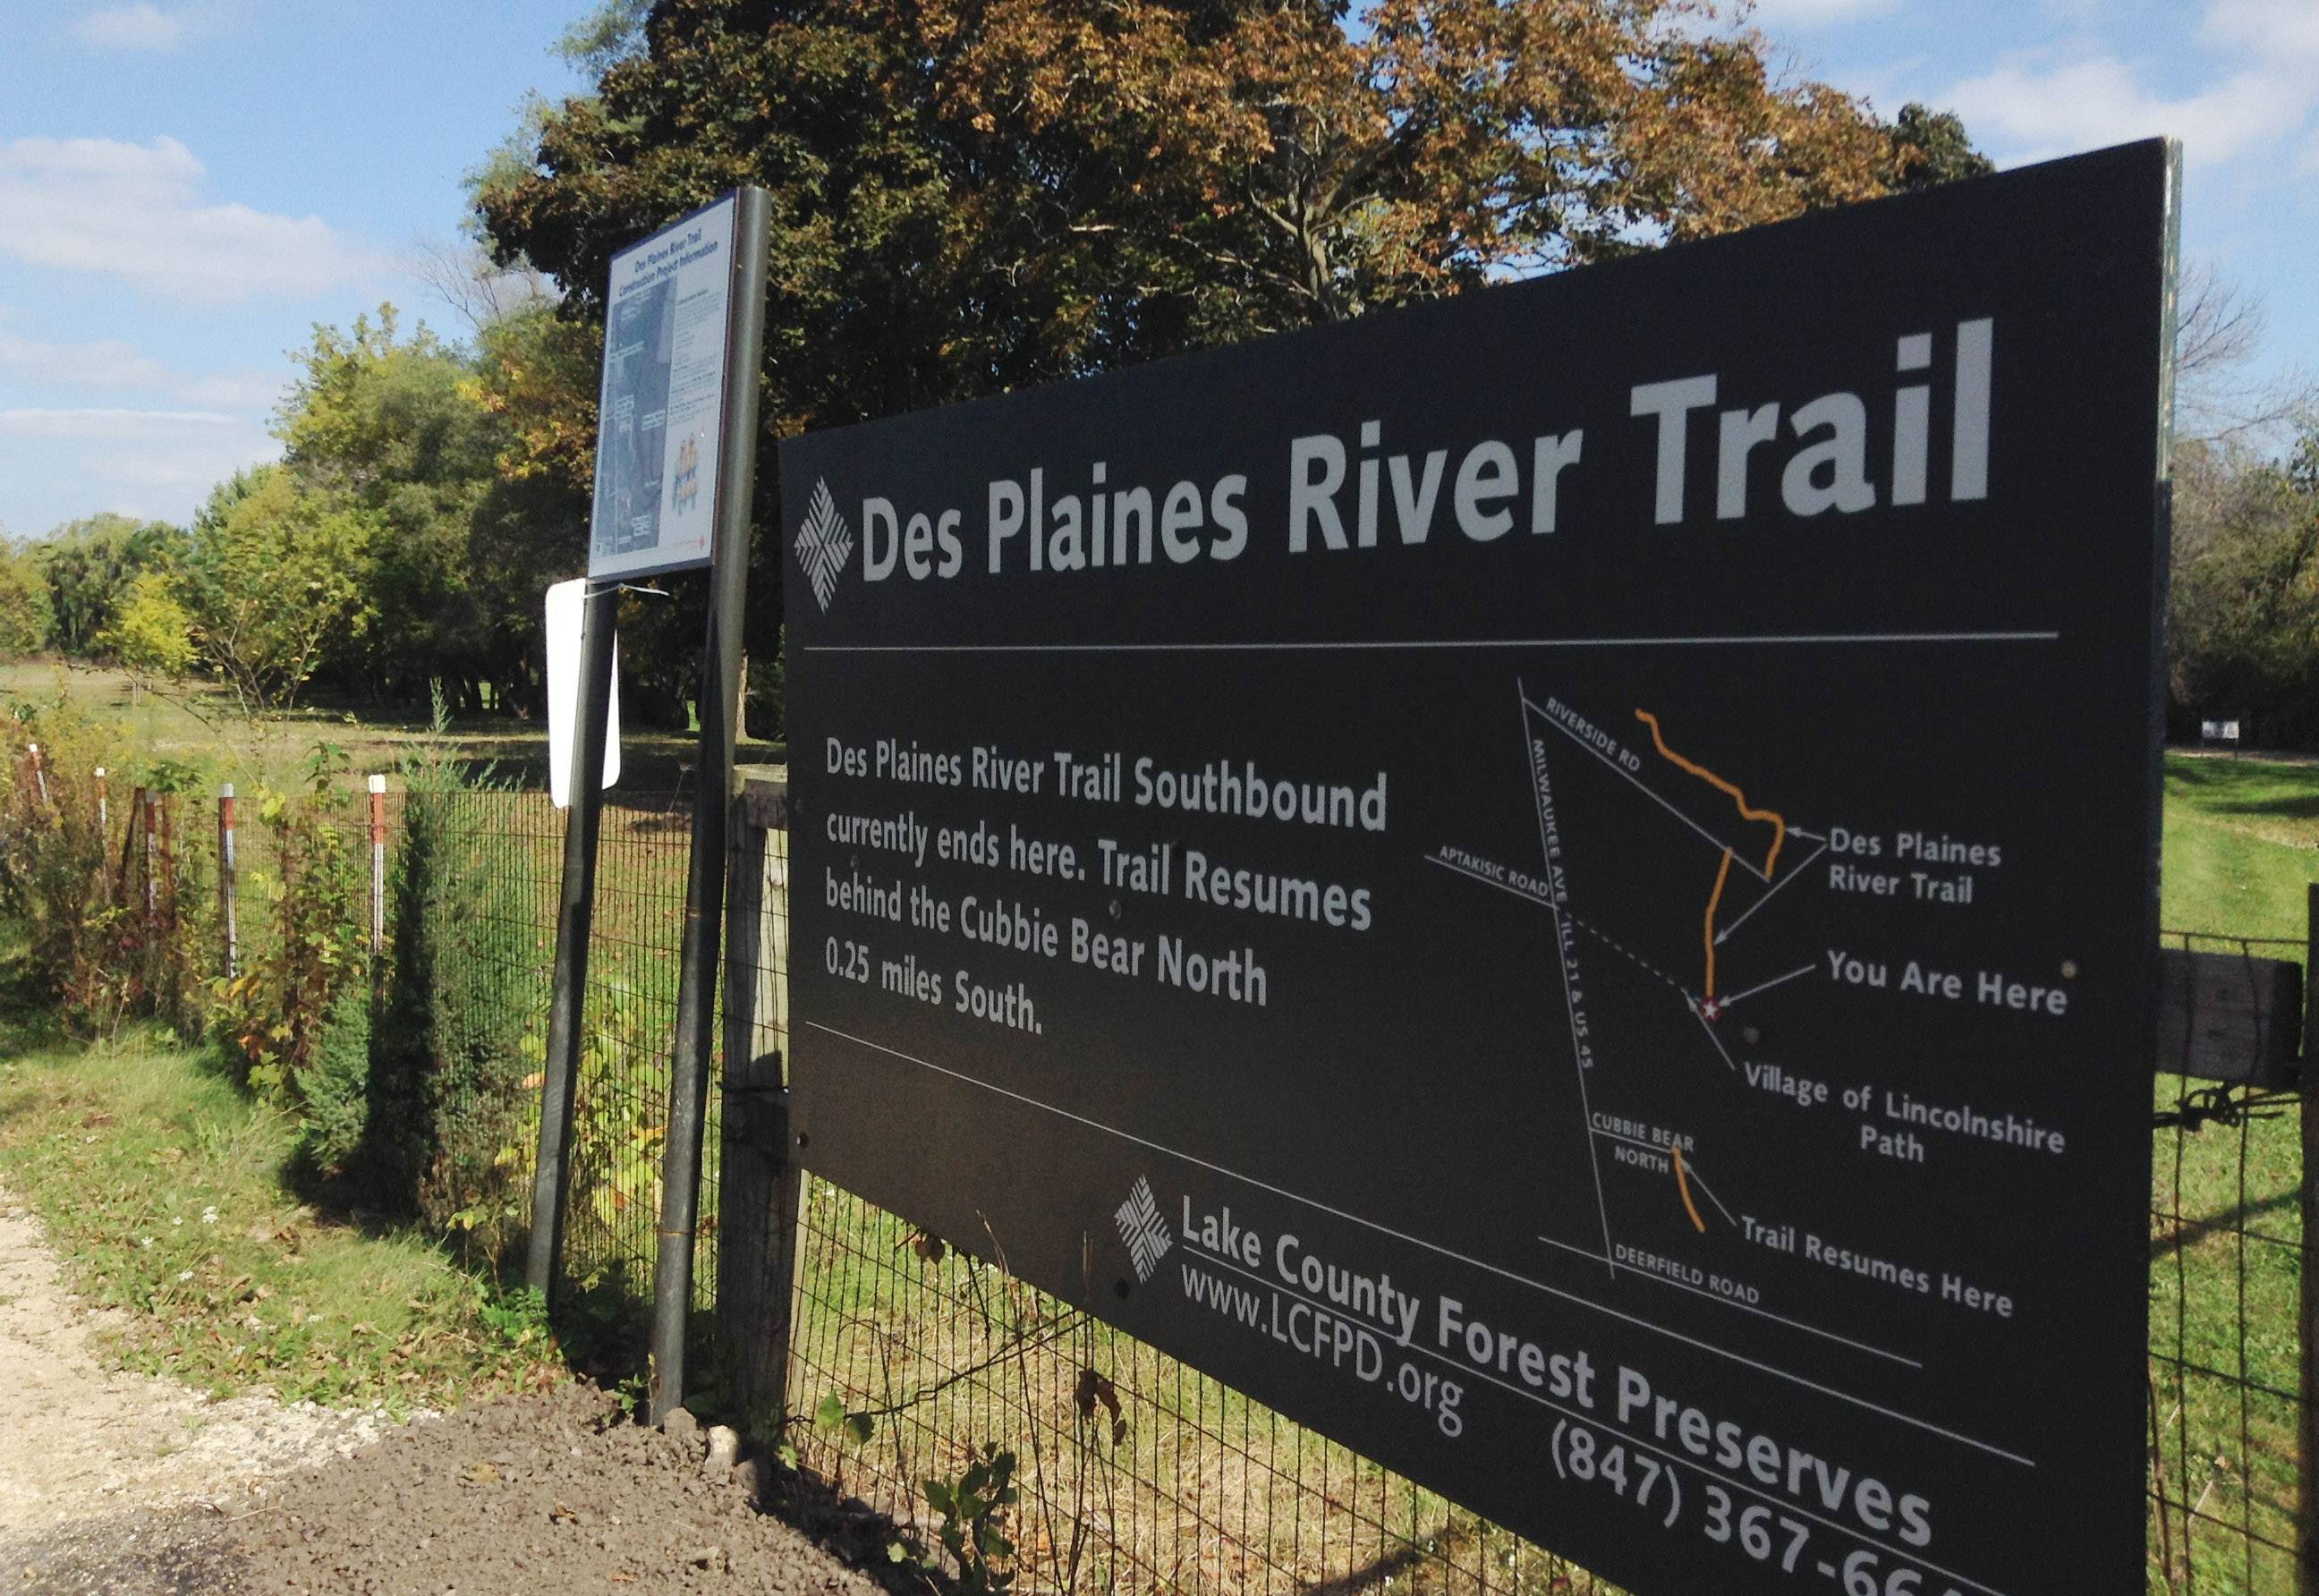 Lake forest preserves issue Des Plaines River Trail challenge